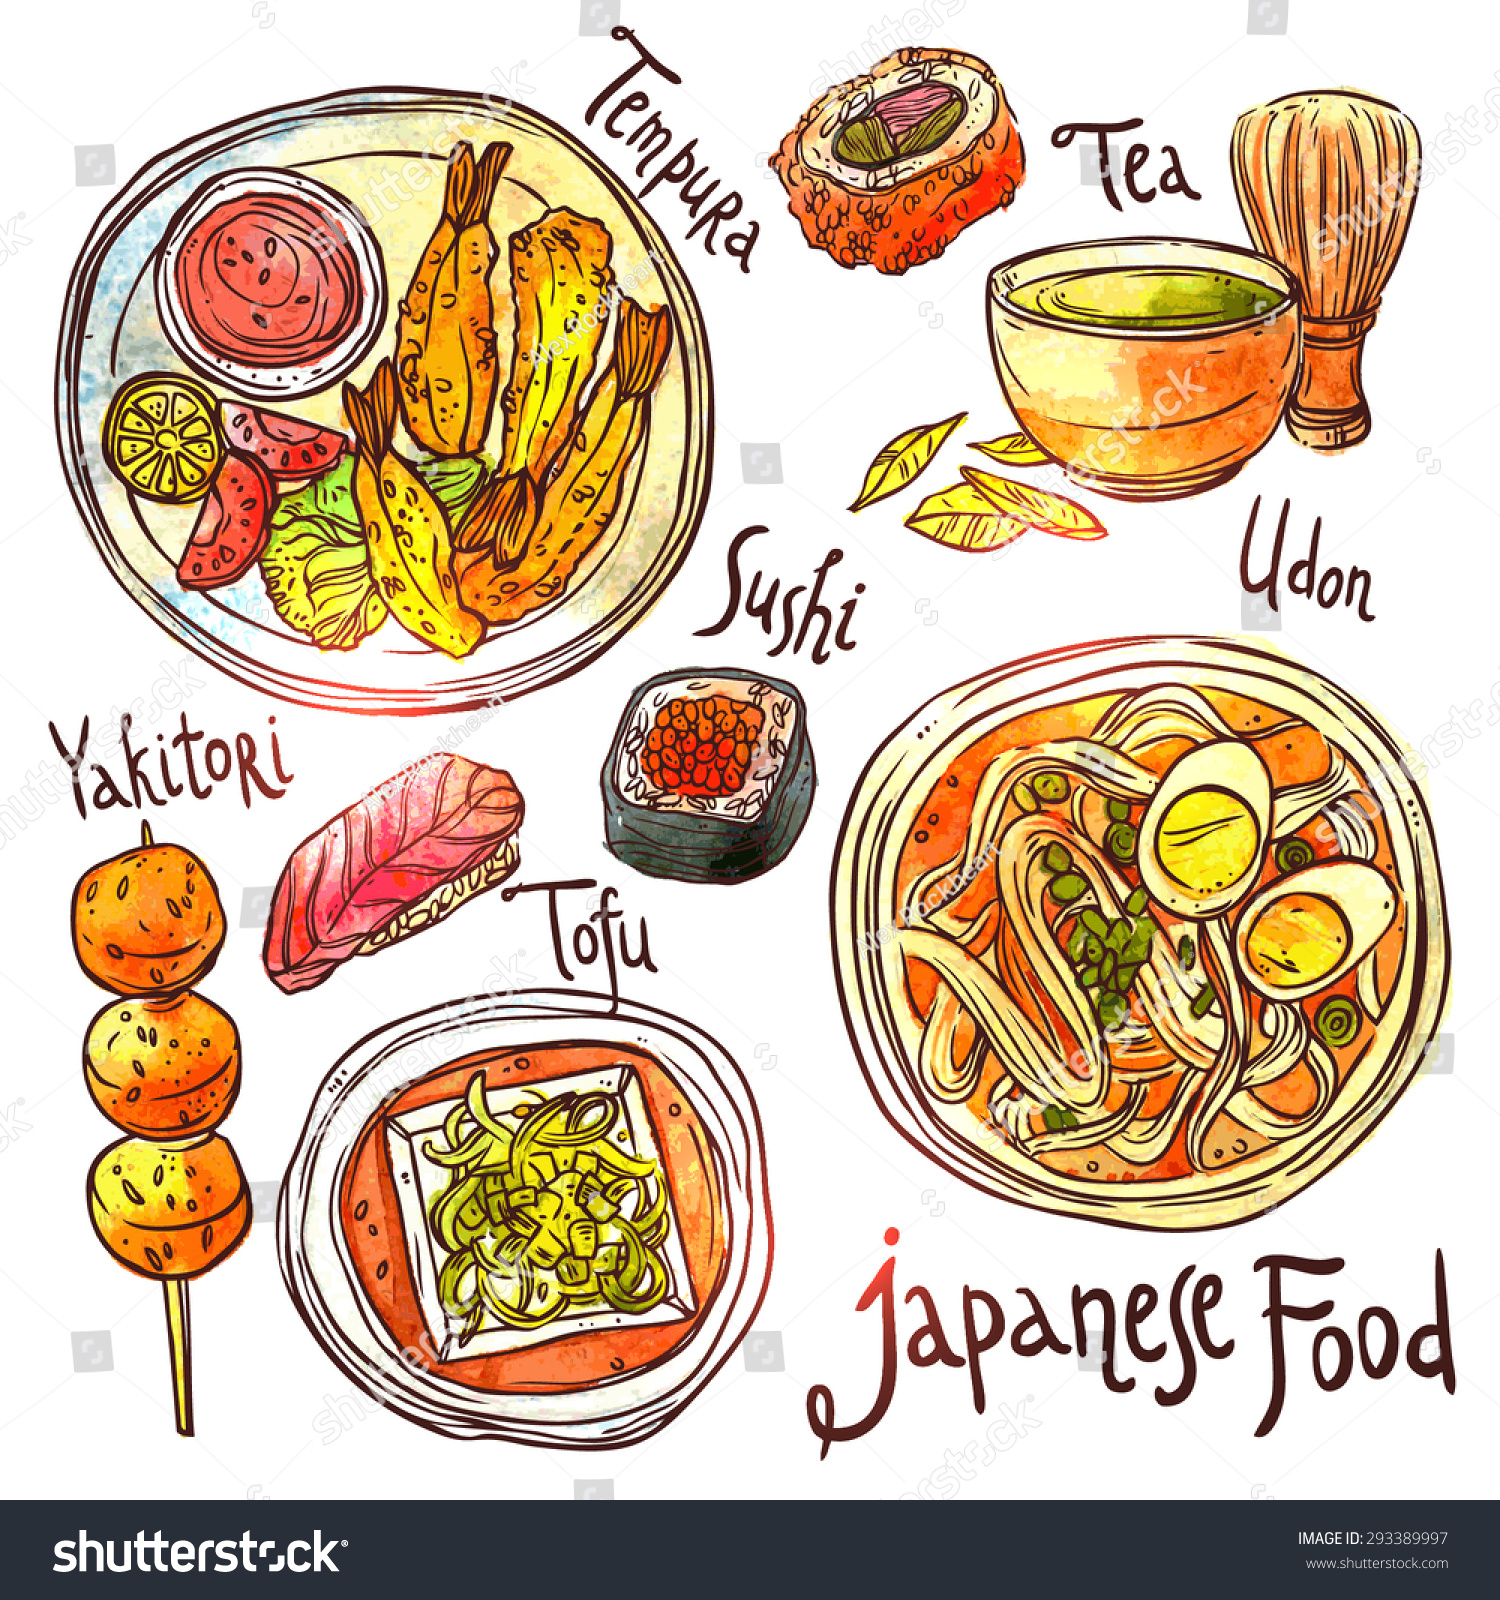 Royalty free asian food hand drawn watercolor 293389997 for Asia asian cuisine